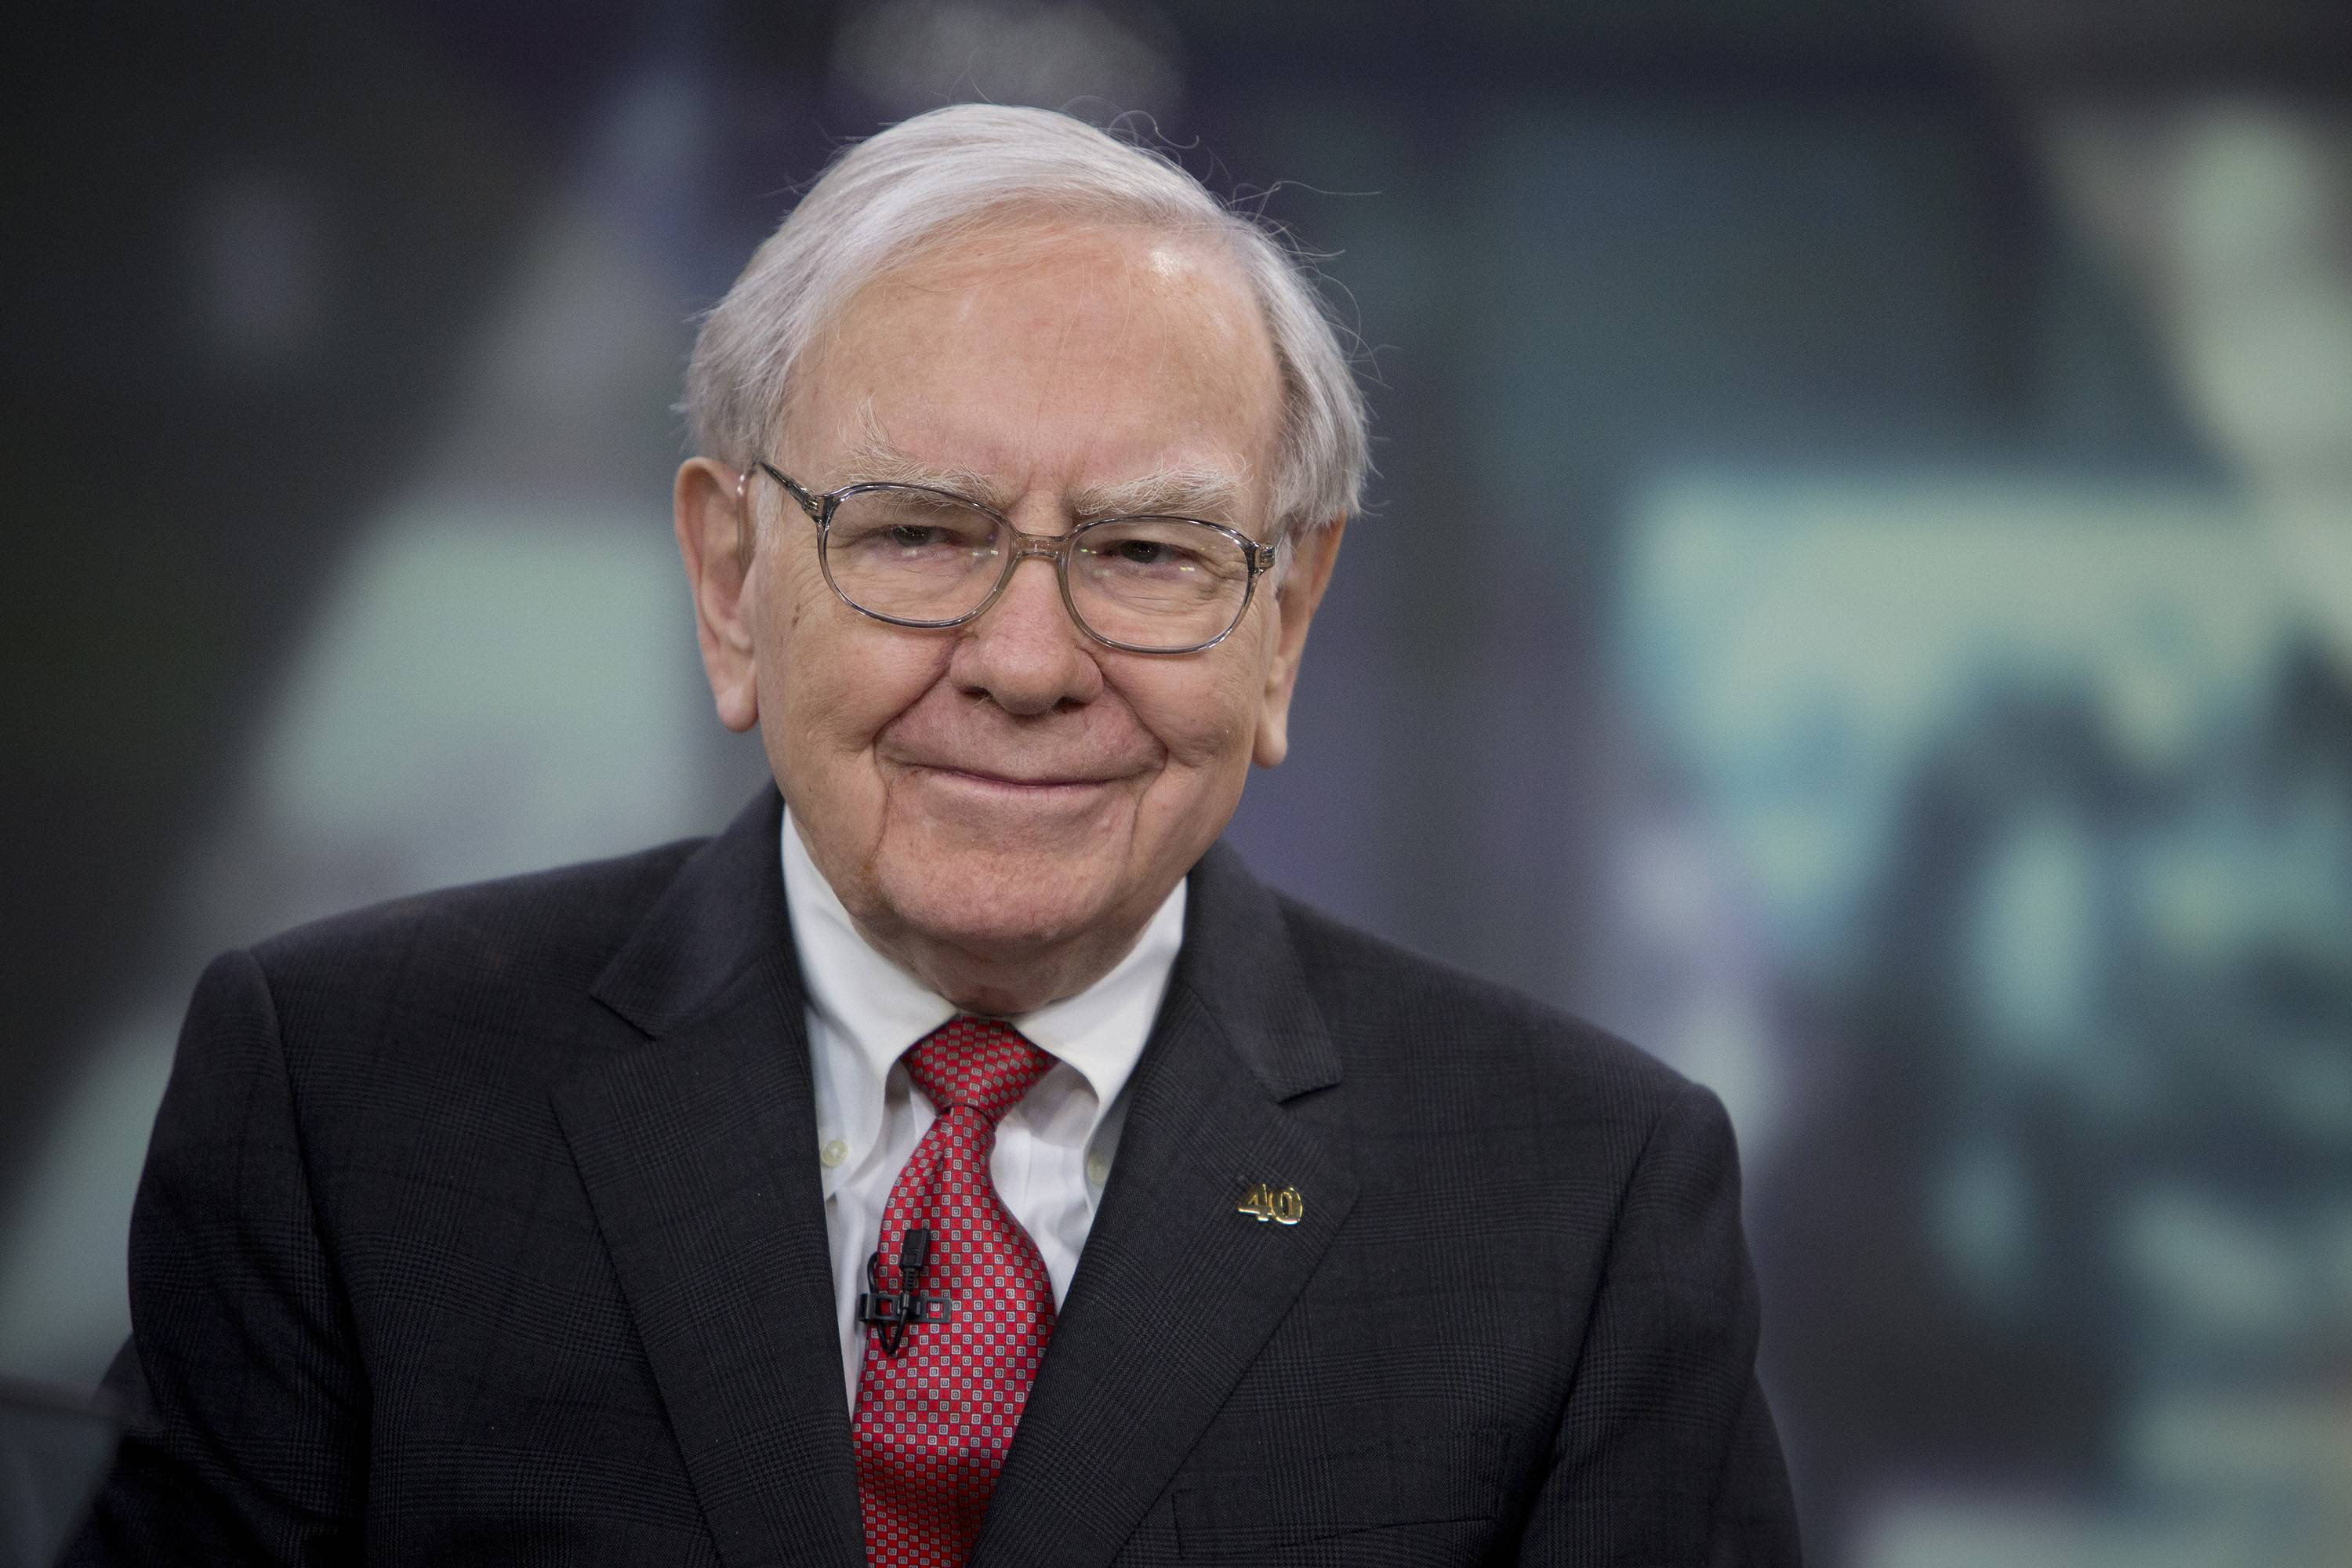 Warren Buffett, chairman and chief executive officer of Berkshire Hathaway Inc.Buffett got his entrepreneurial start at age 7, buying six-packs of Coke for a quarter, then hawking the beverages for a nickel apiece on hot summer nights.